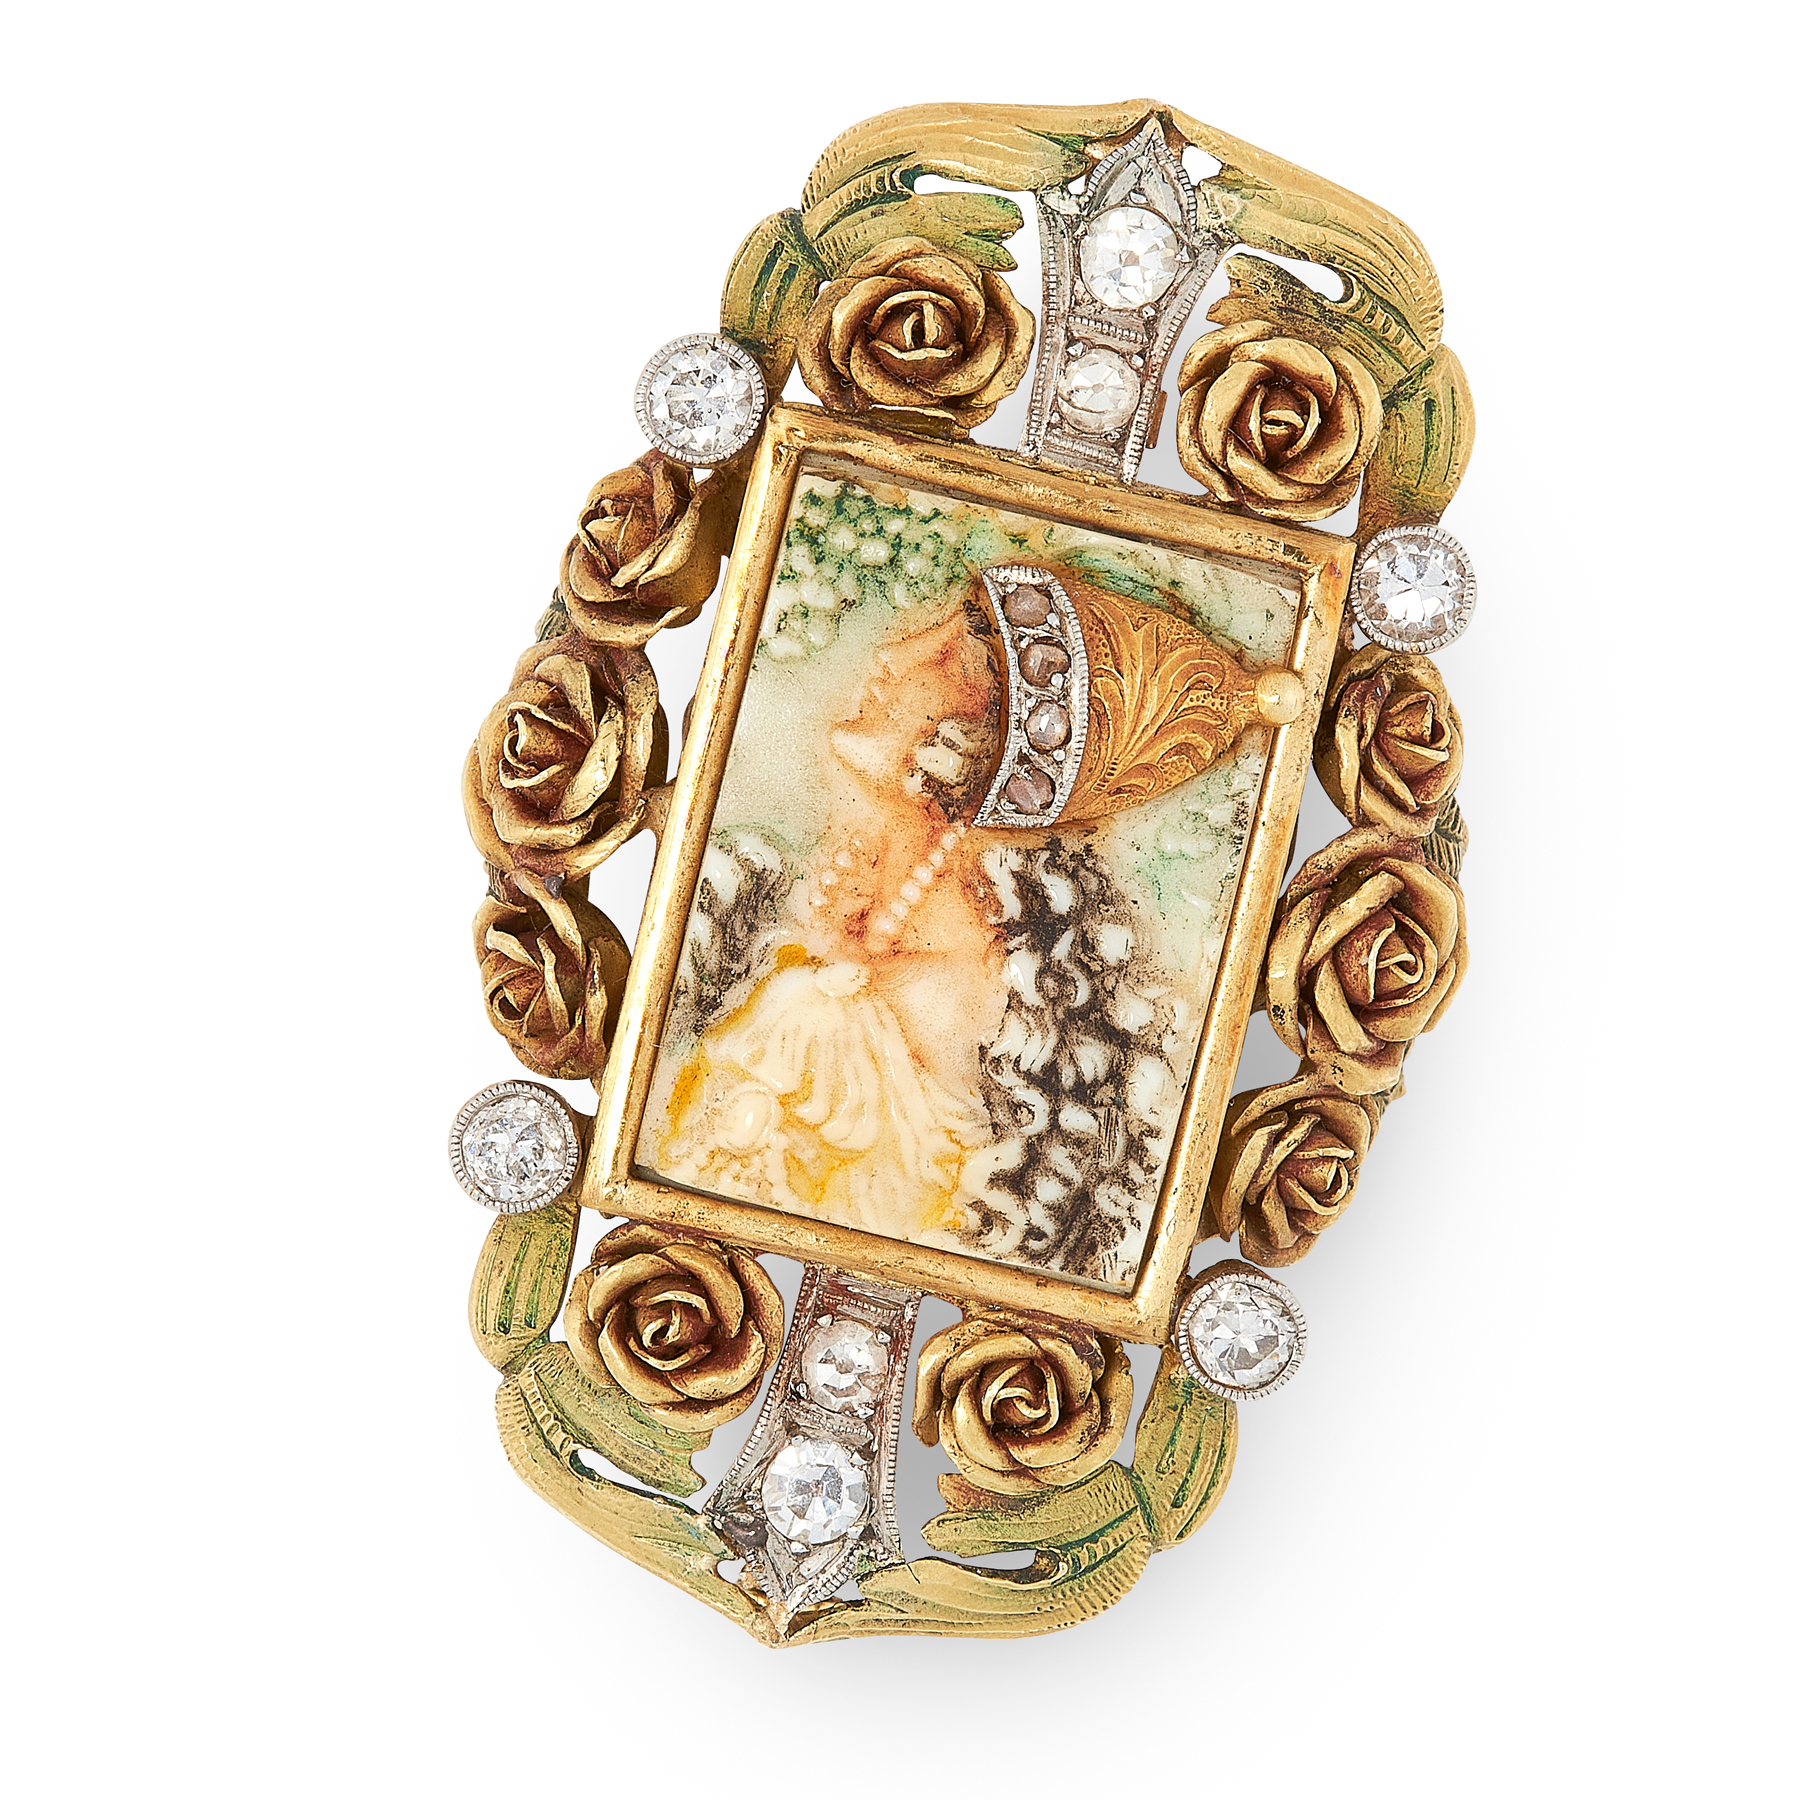 AN ART NOUVEAU ENAMEL AND DIAMOND CAMEO BROOCH, EARLY 20TH CENTURY in yellow gold, set with a